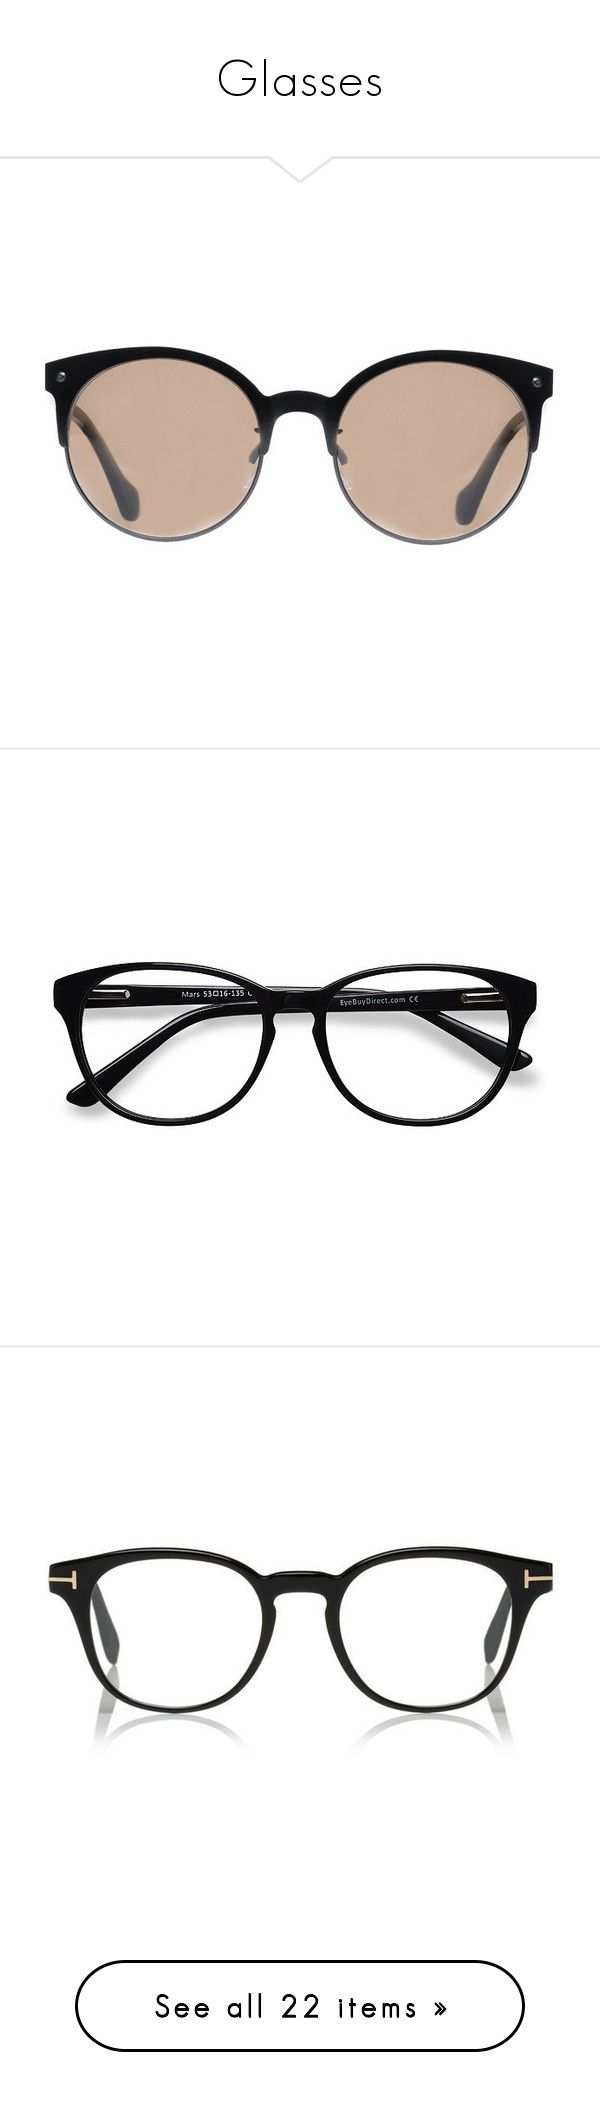 """""""Glasses"""" by naditetzner ❤ liked on Polyvore featuring accessories, eyewear, sunglasses, glasses, balenciaga eyewear, balenciaga, balenciaga glasses, balenciaga sunglasses, eyeglasses and black"""